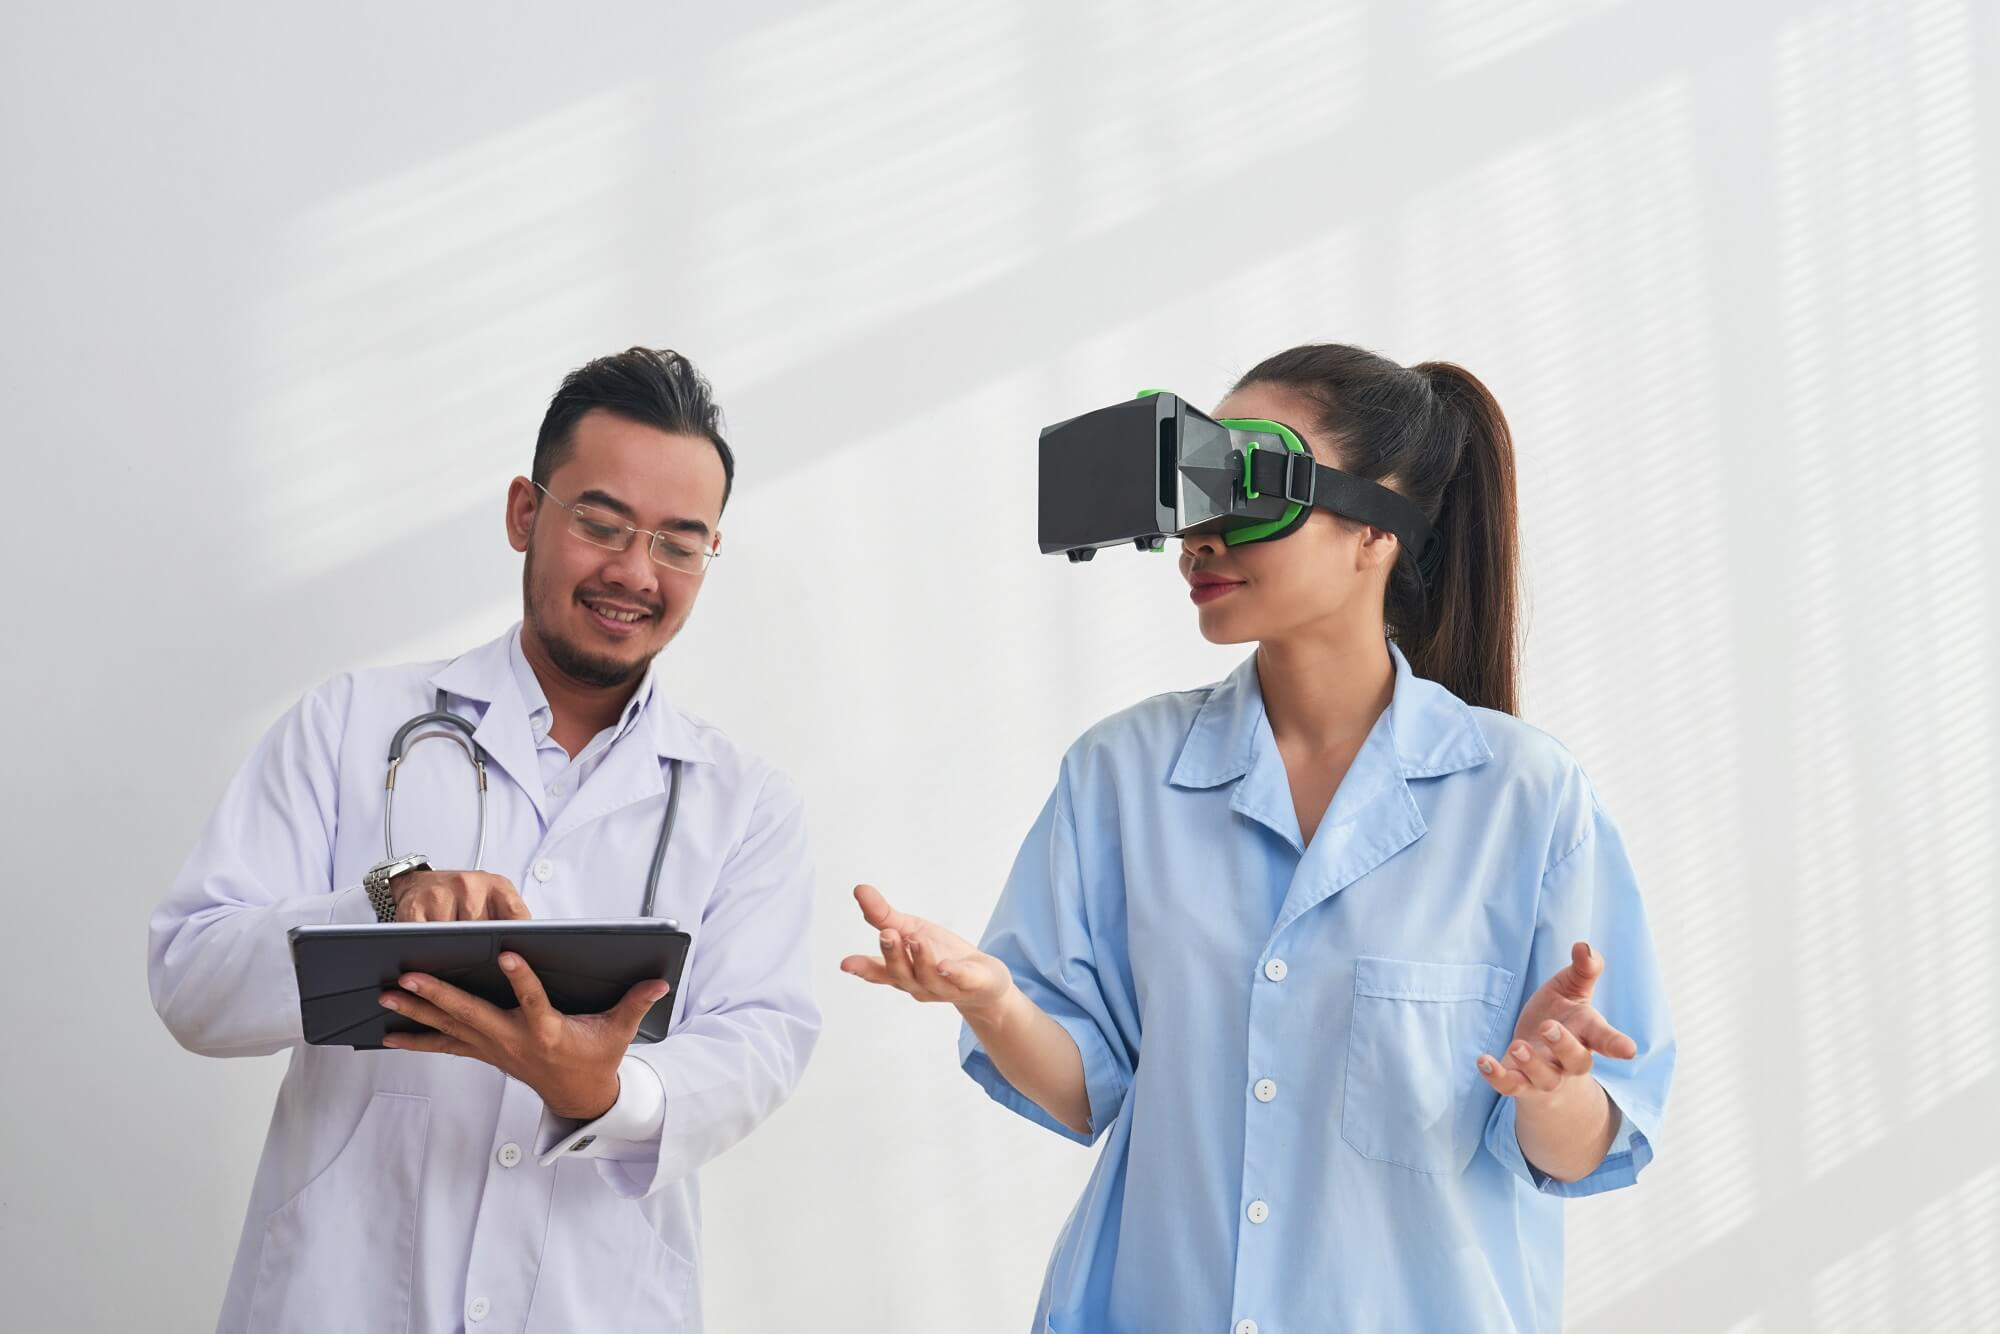 Smiling doctor controlling virtual reality application